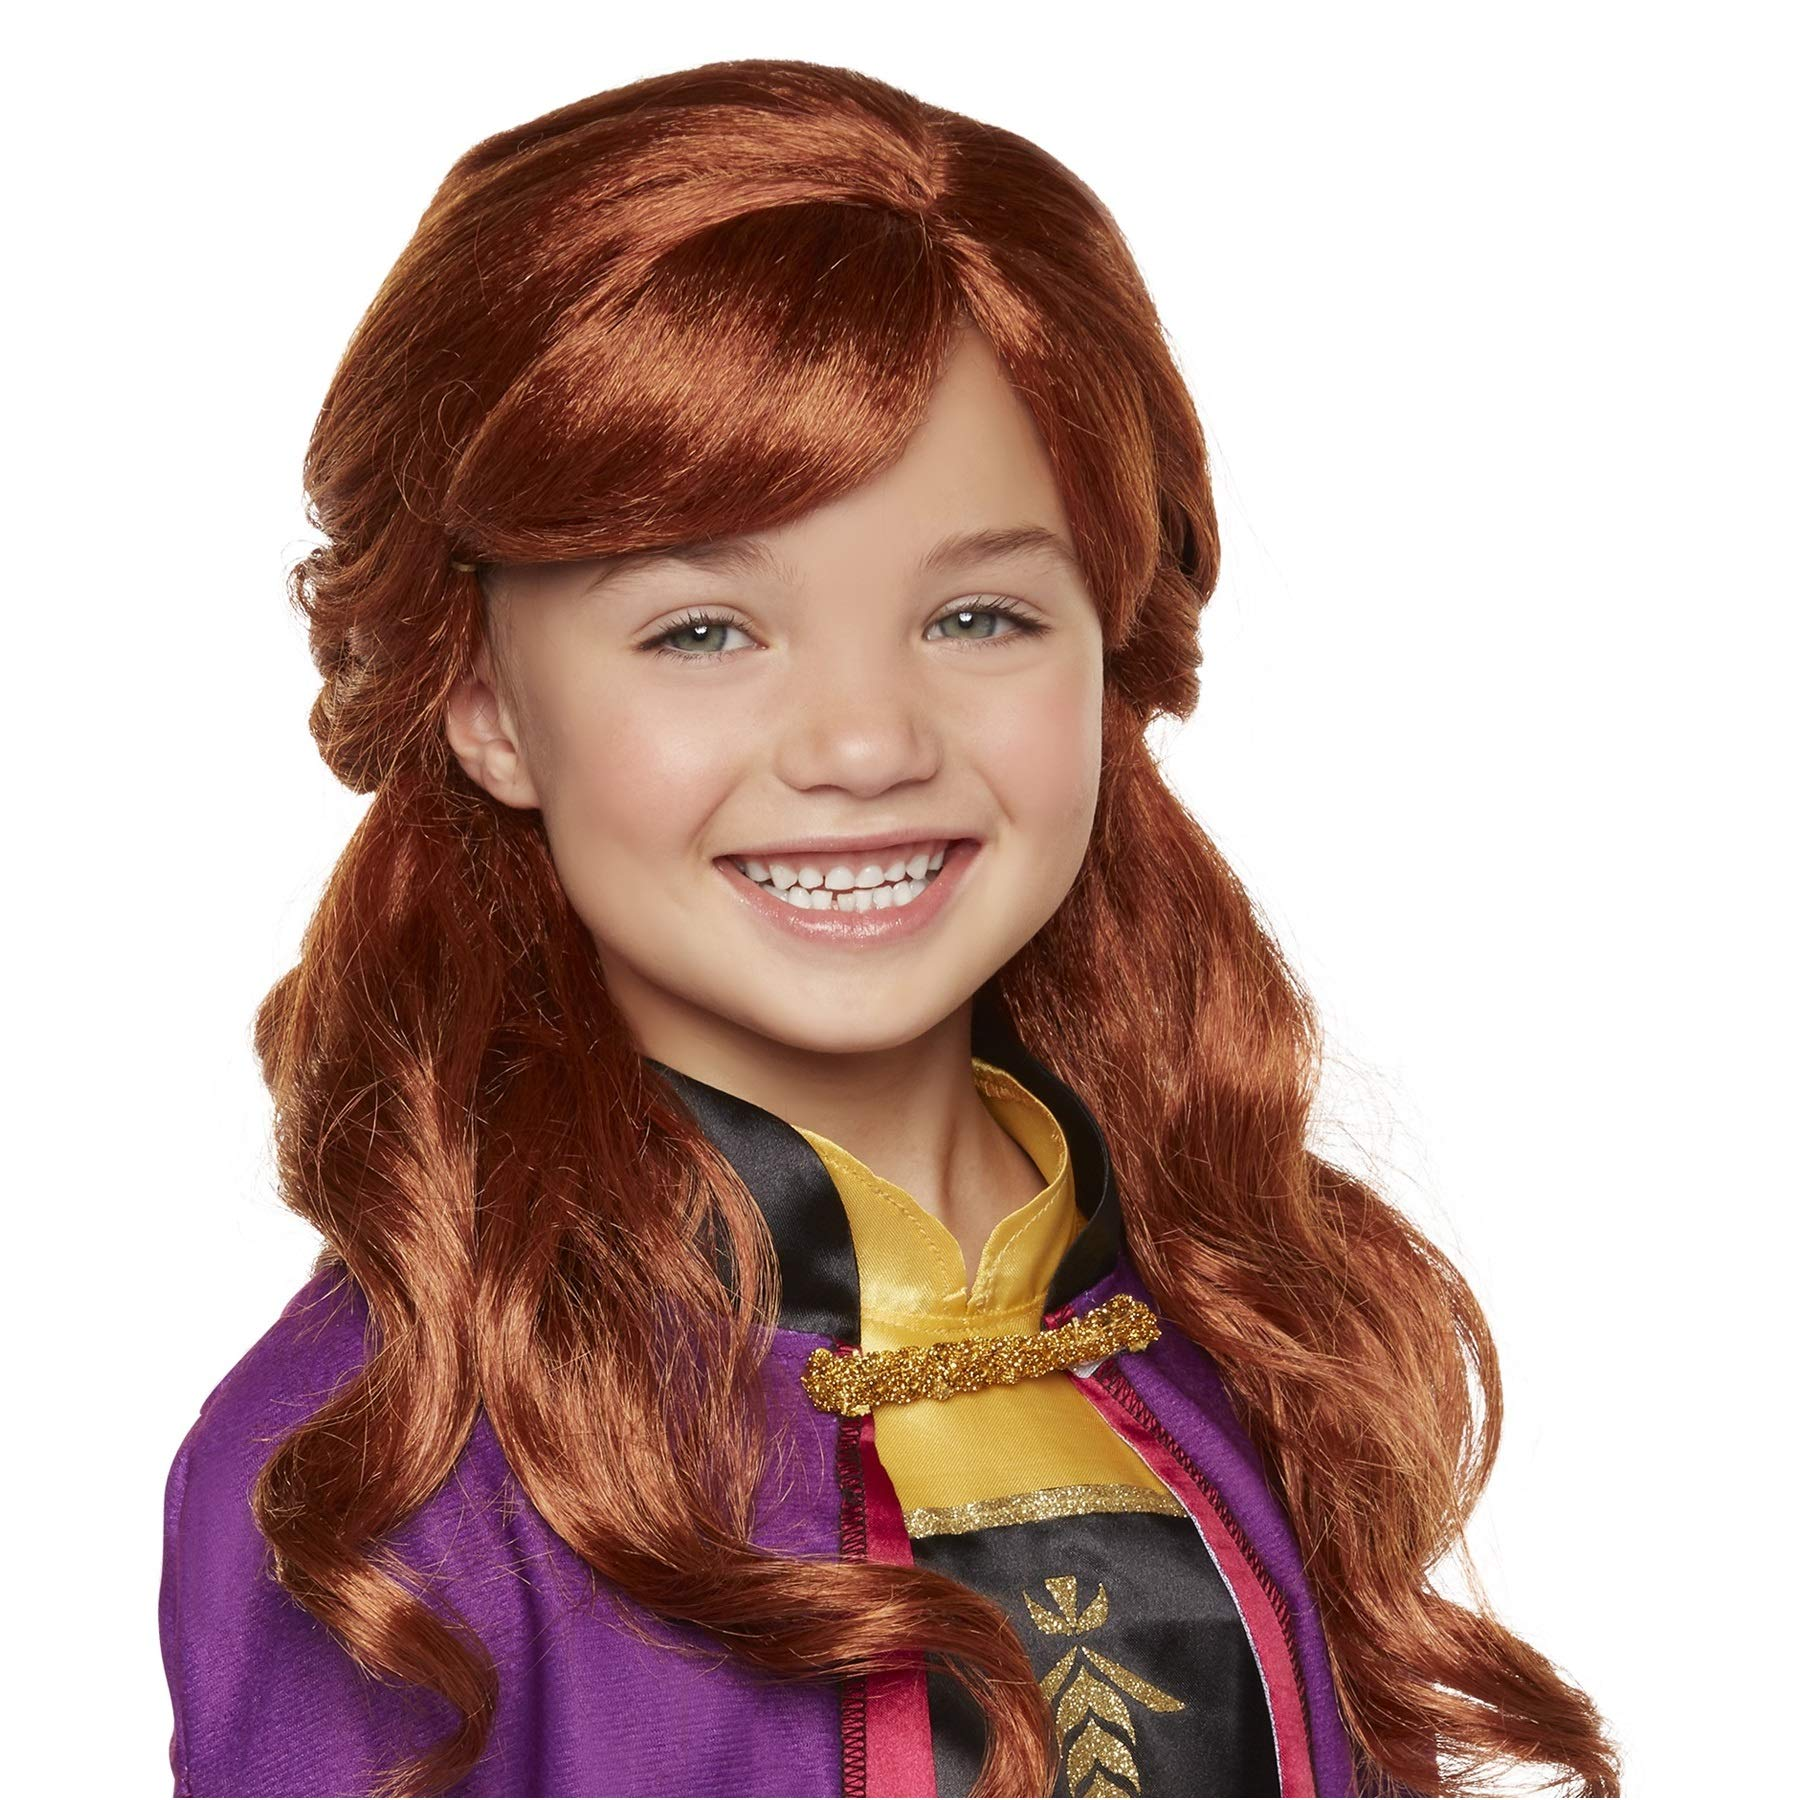 Disney Frozen 2 Anna Wig, 18'' Long Flowing Red Hair with Braid Detail for Girls Costume, Dress Up or Halloween - For Ages 3+ by Frozen 2